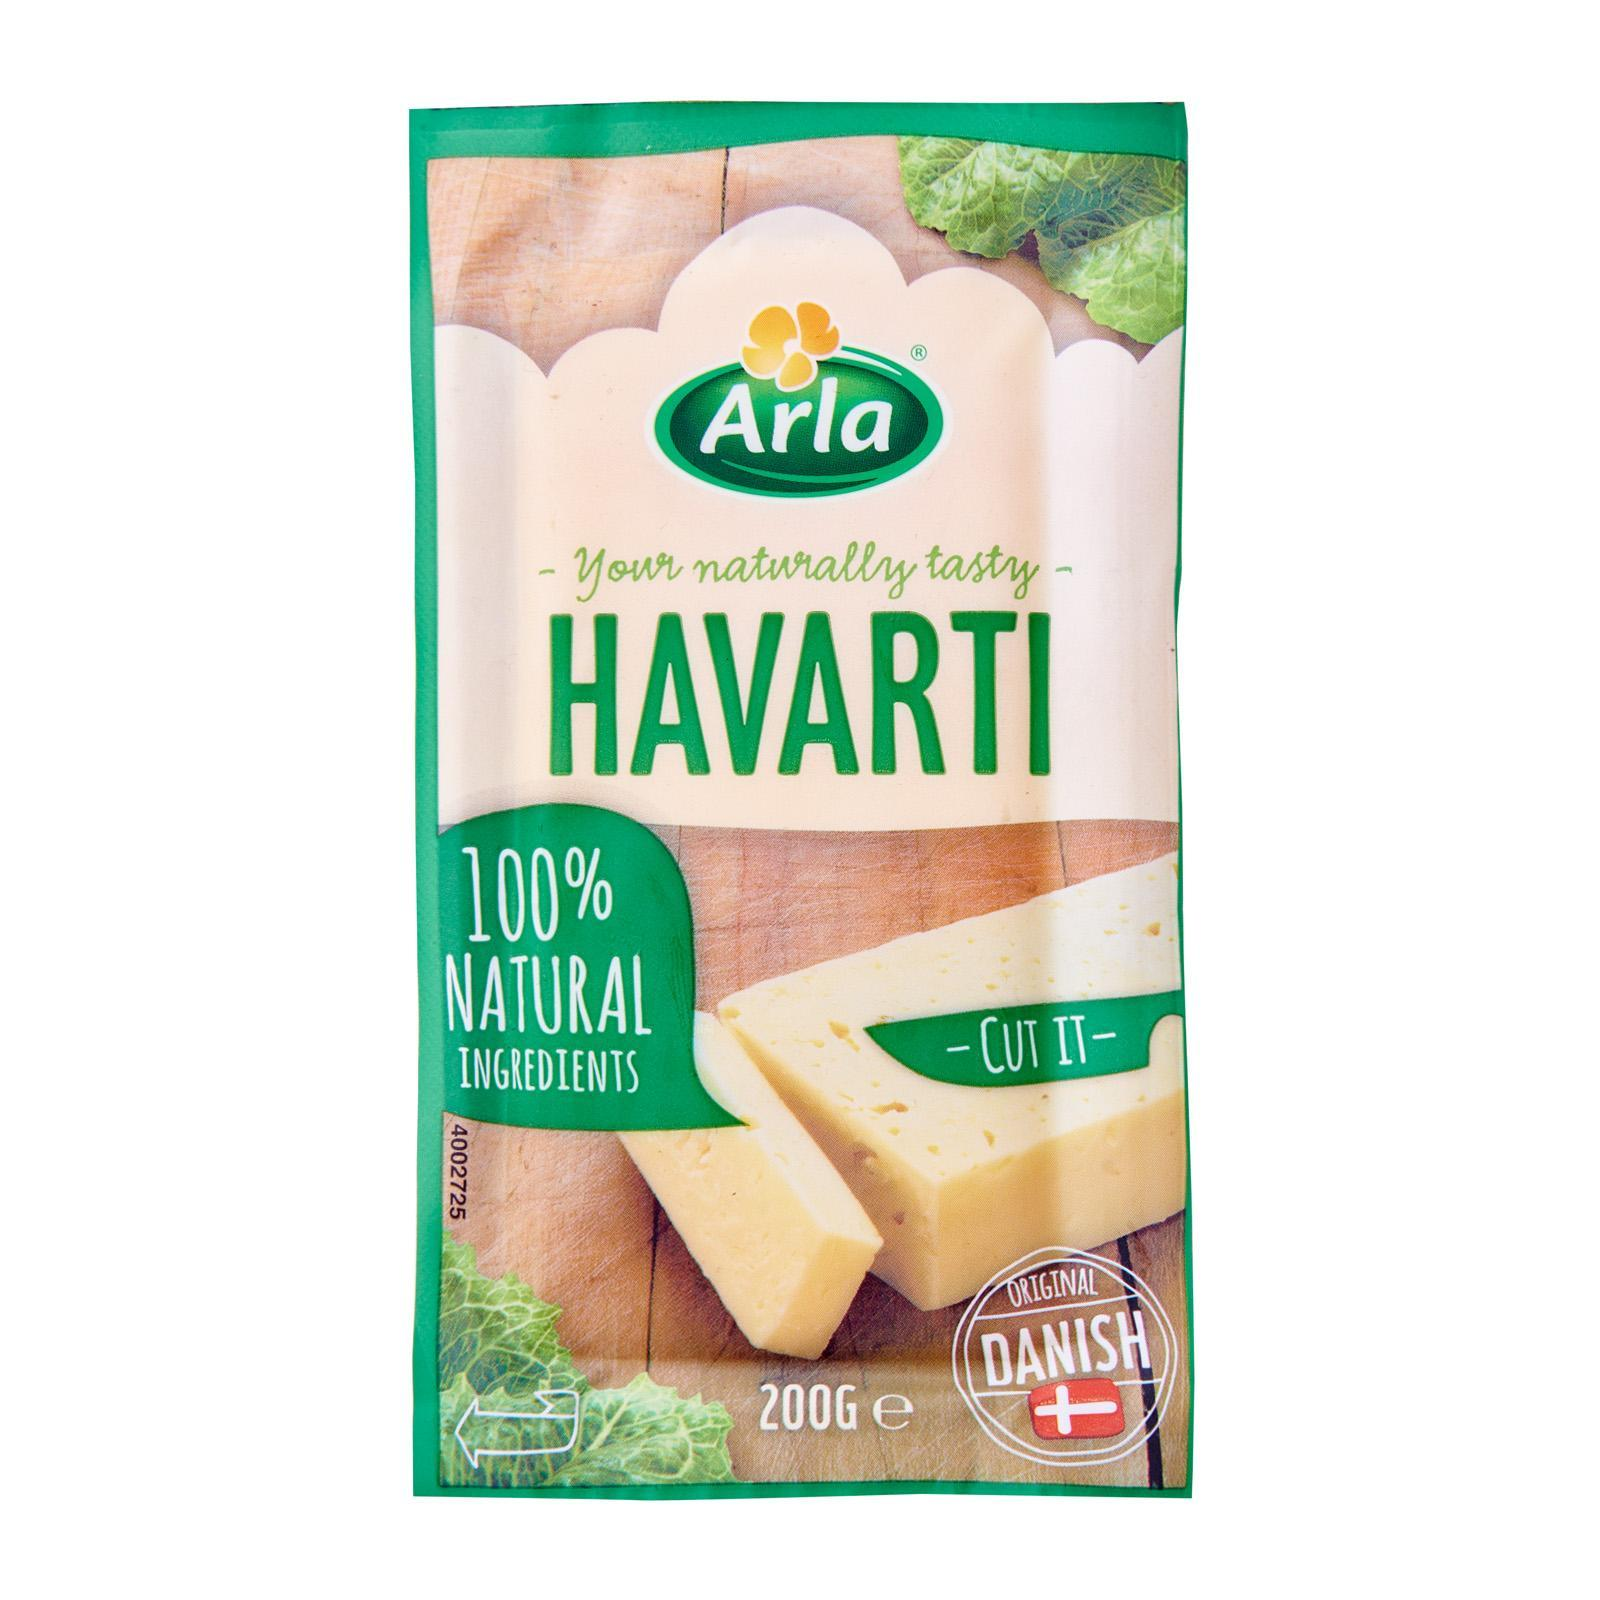 Arla Havarti Block Cheese